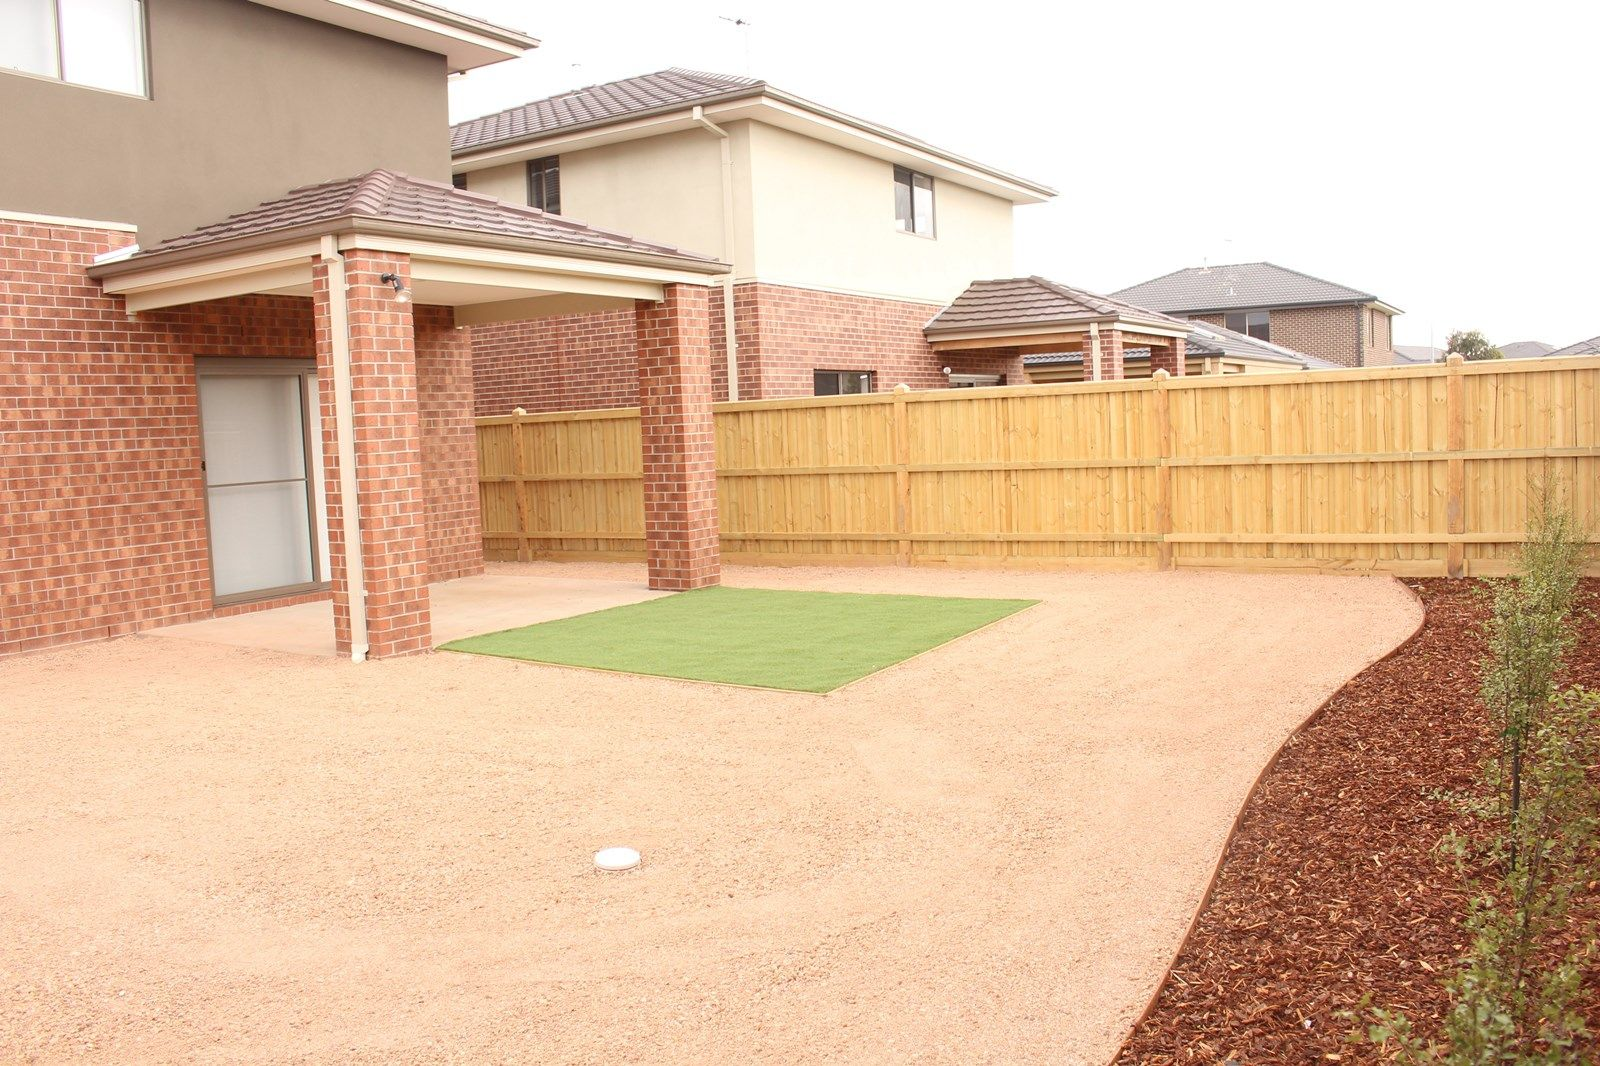 14 Runlet Drive, Point Cook VIC 3030, Image 9